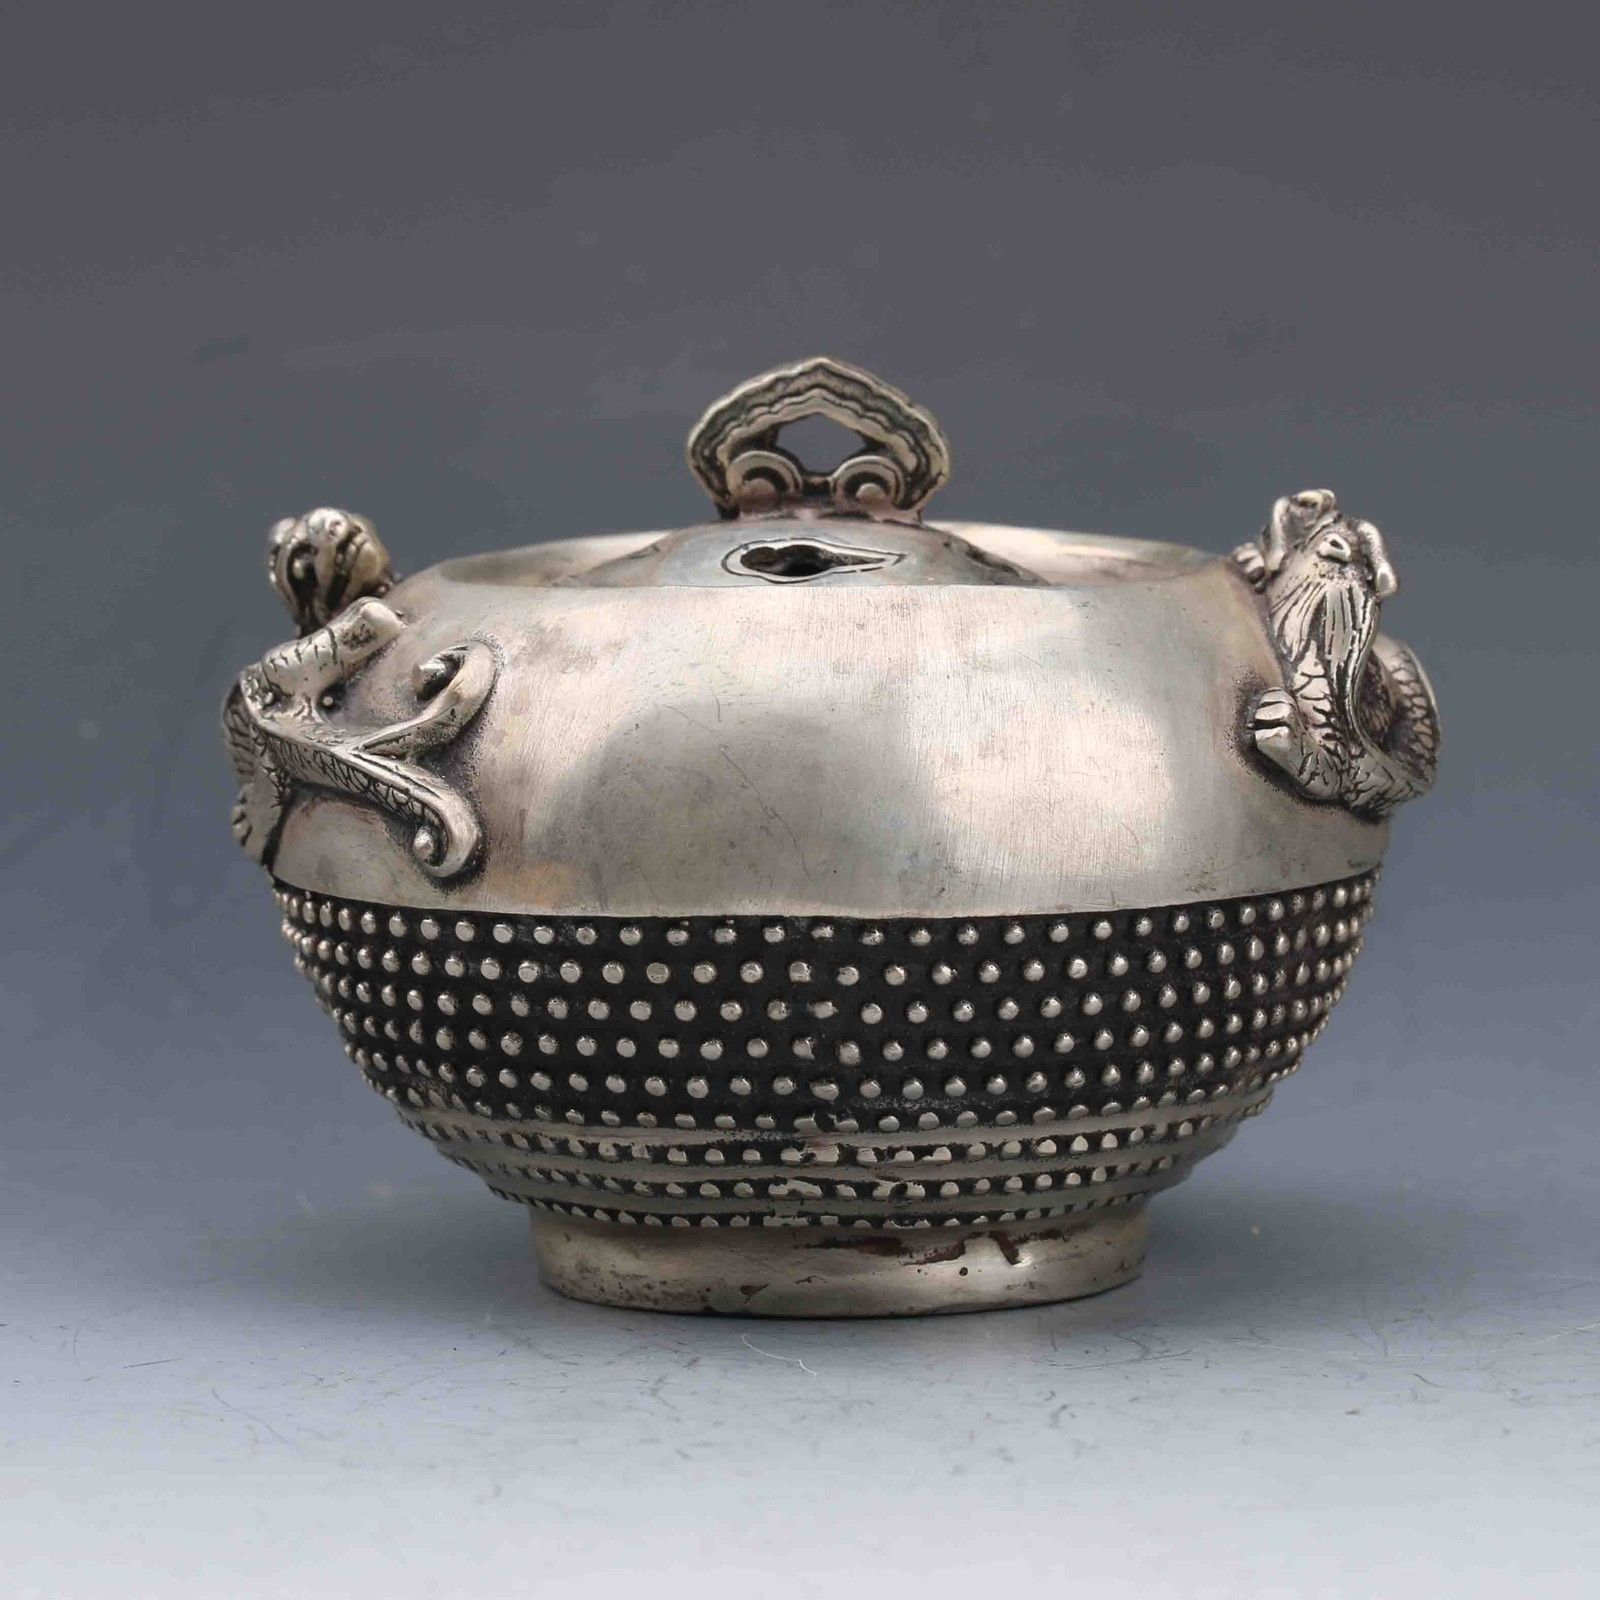 MIAO SILVER HANDWORK-CARVED DRAGON INCENSE BURNERMIAO SILVER HANDWORK-CARVED DRAGON INCENSE BURNER